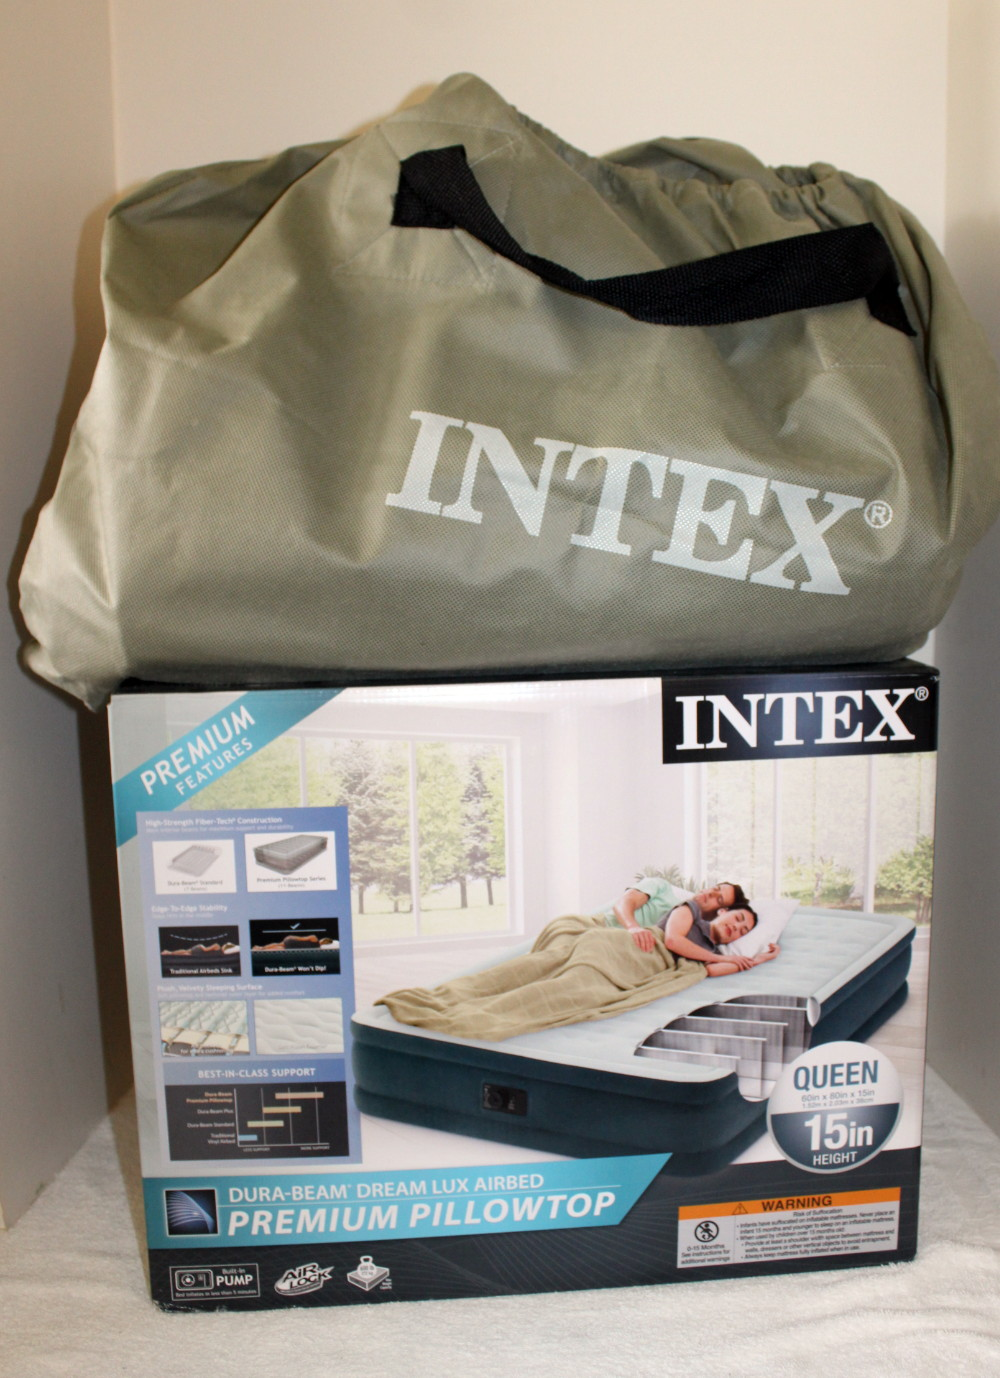 details about intex queen size 15 h inflatable pillow top airbed air mattress used in box